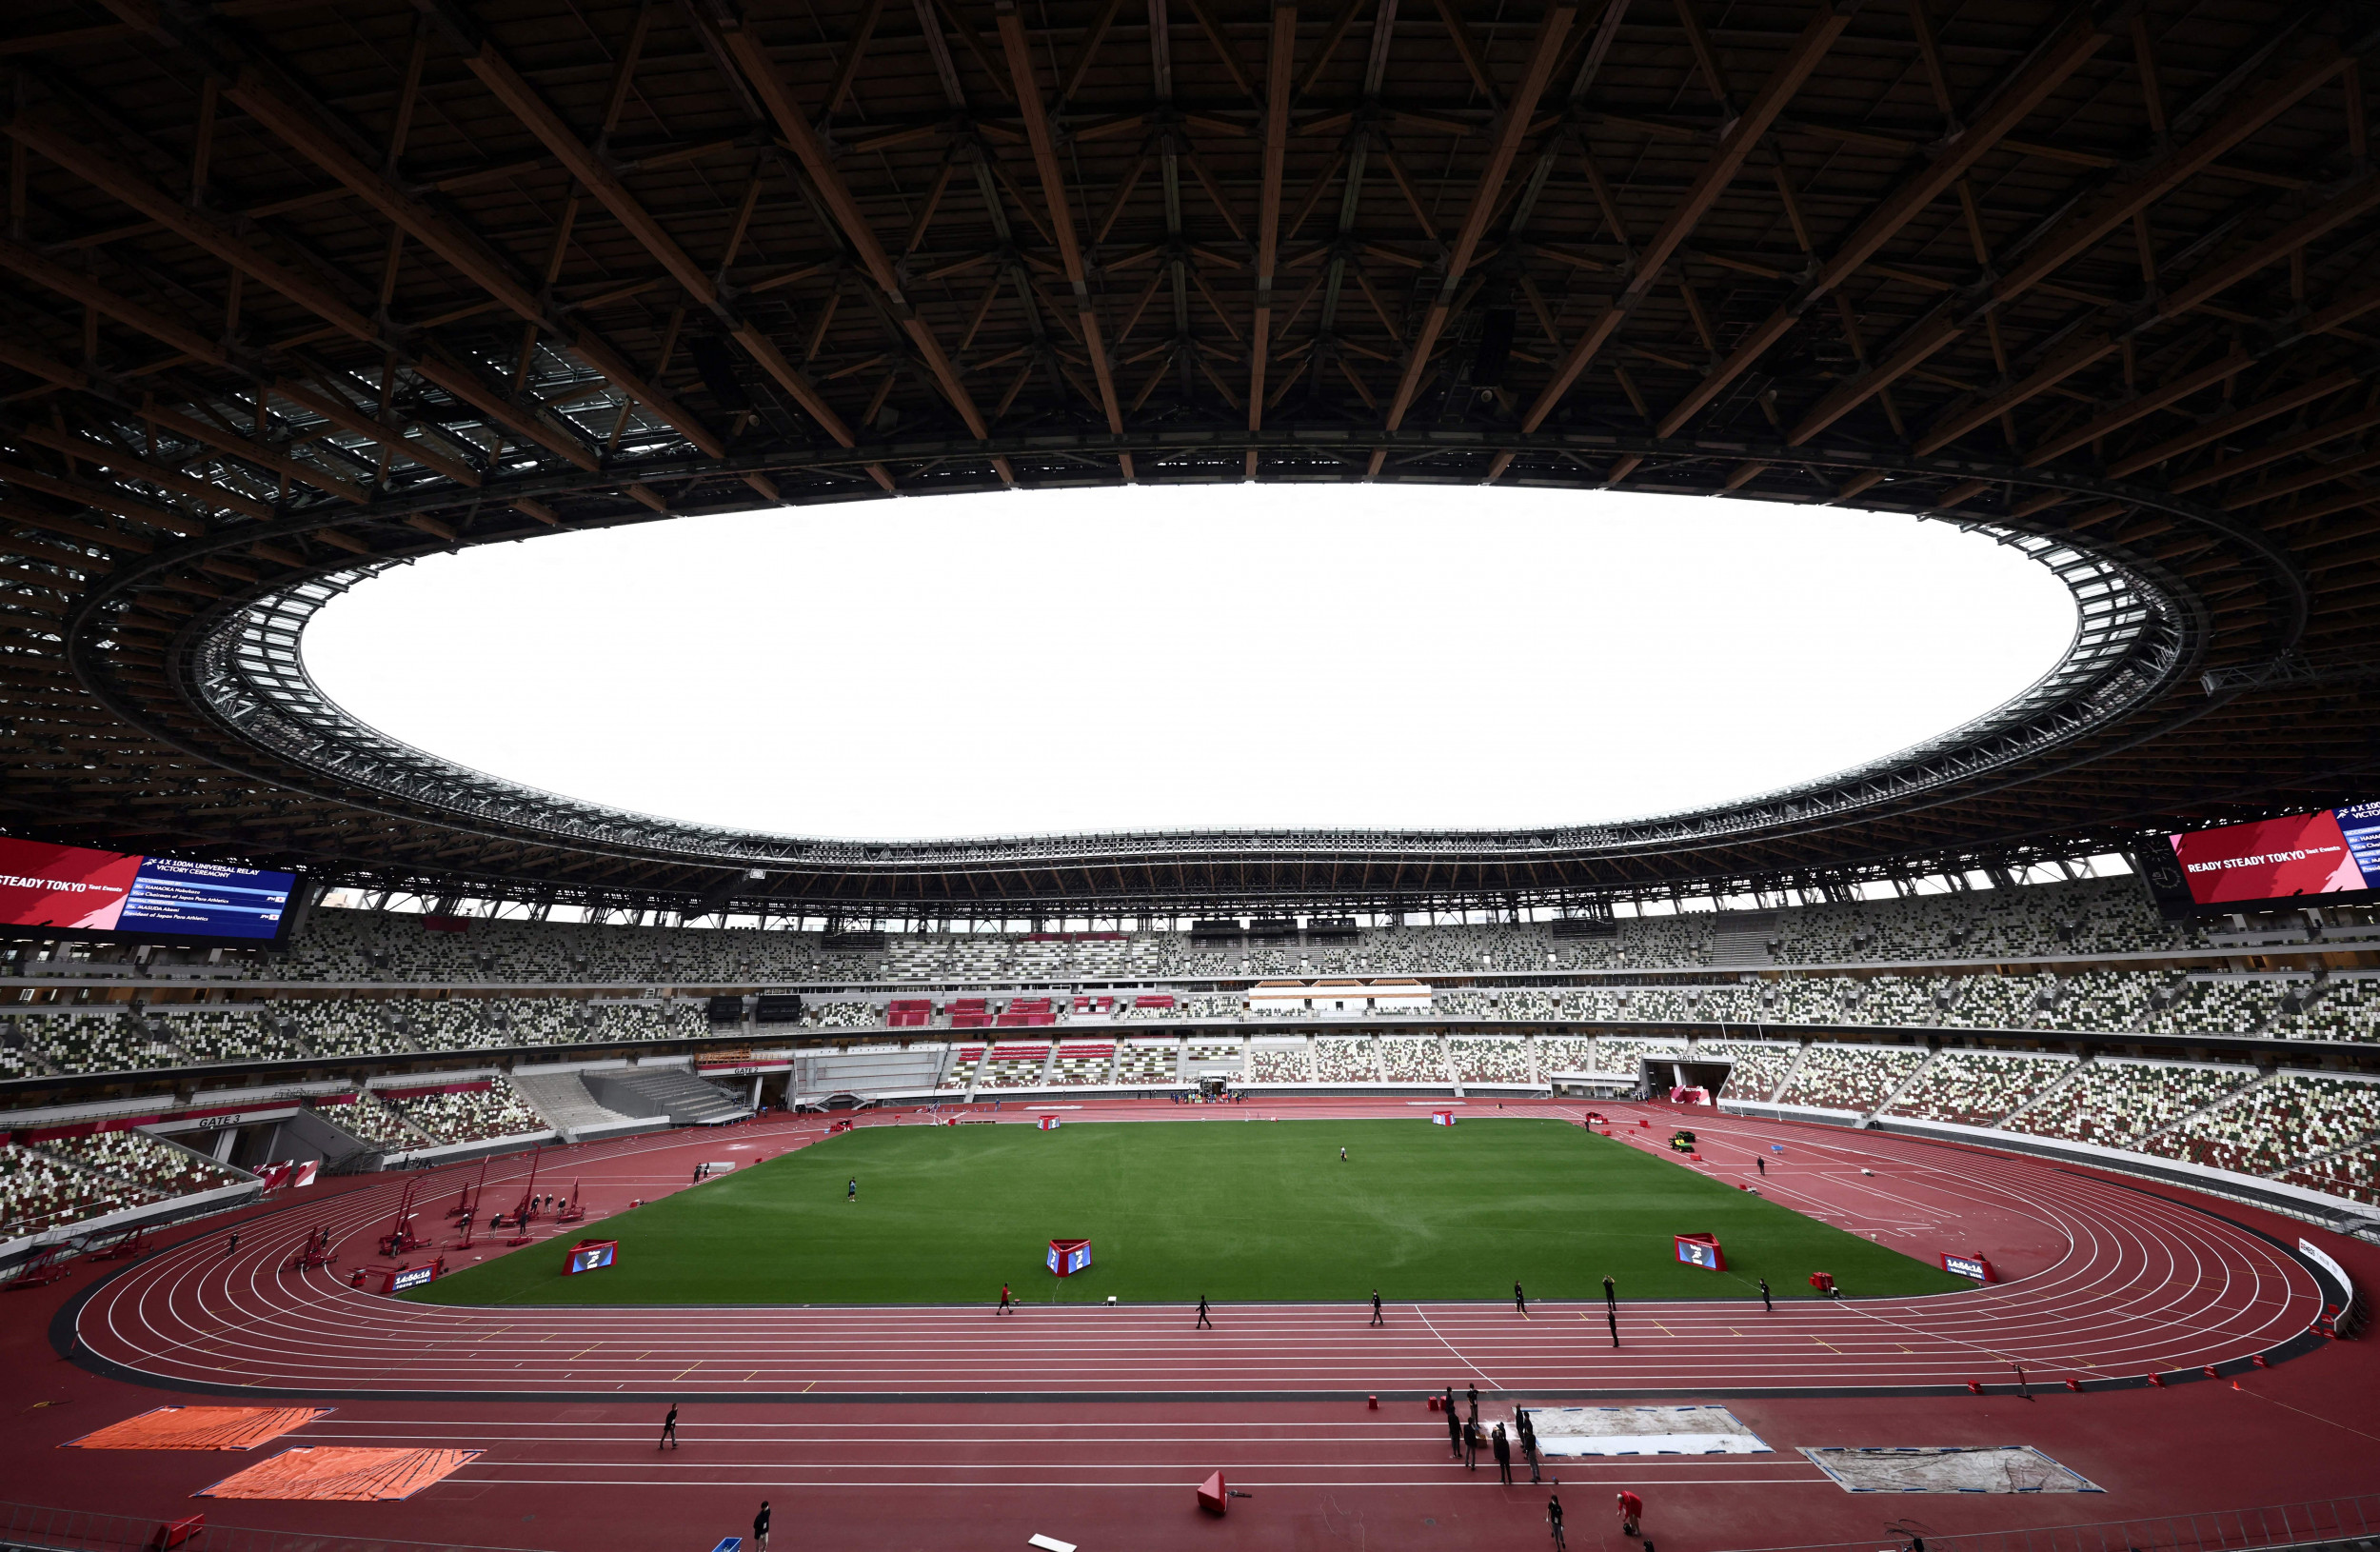 newsweek.com - Dan Cancian - How to watch Tokyo 2020 Olympics opening ceremony on TV and online